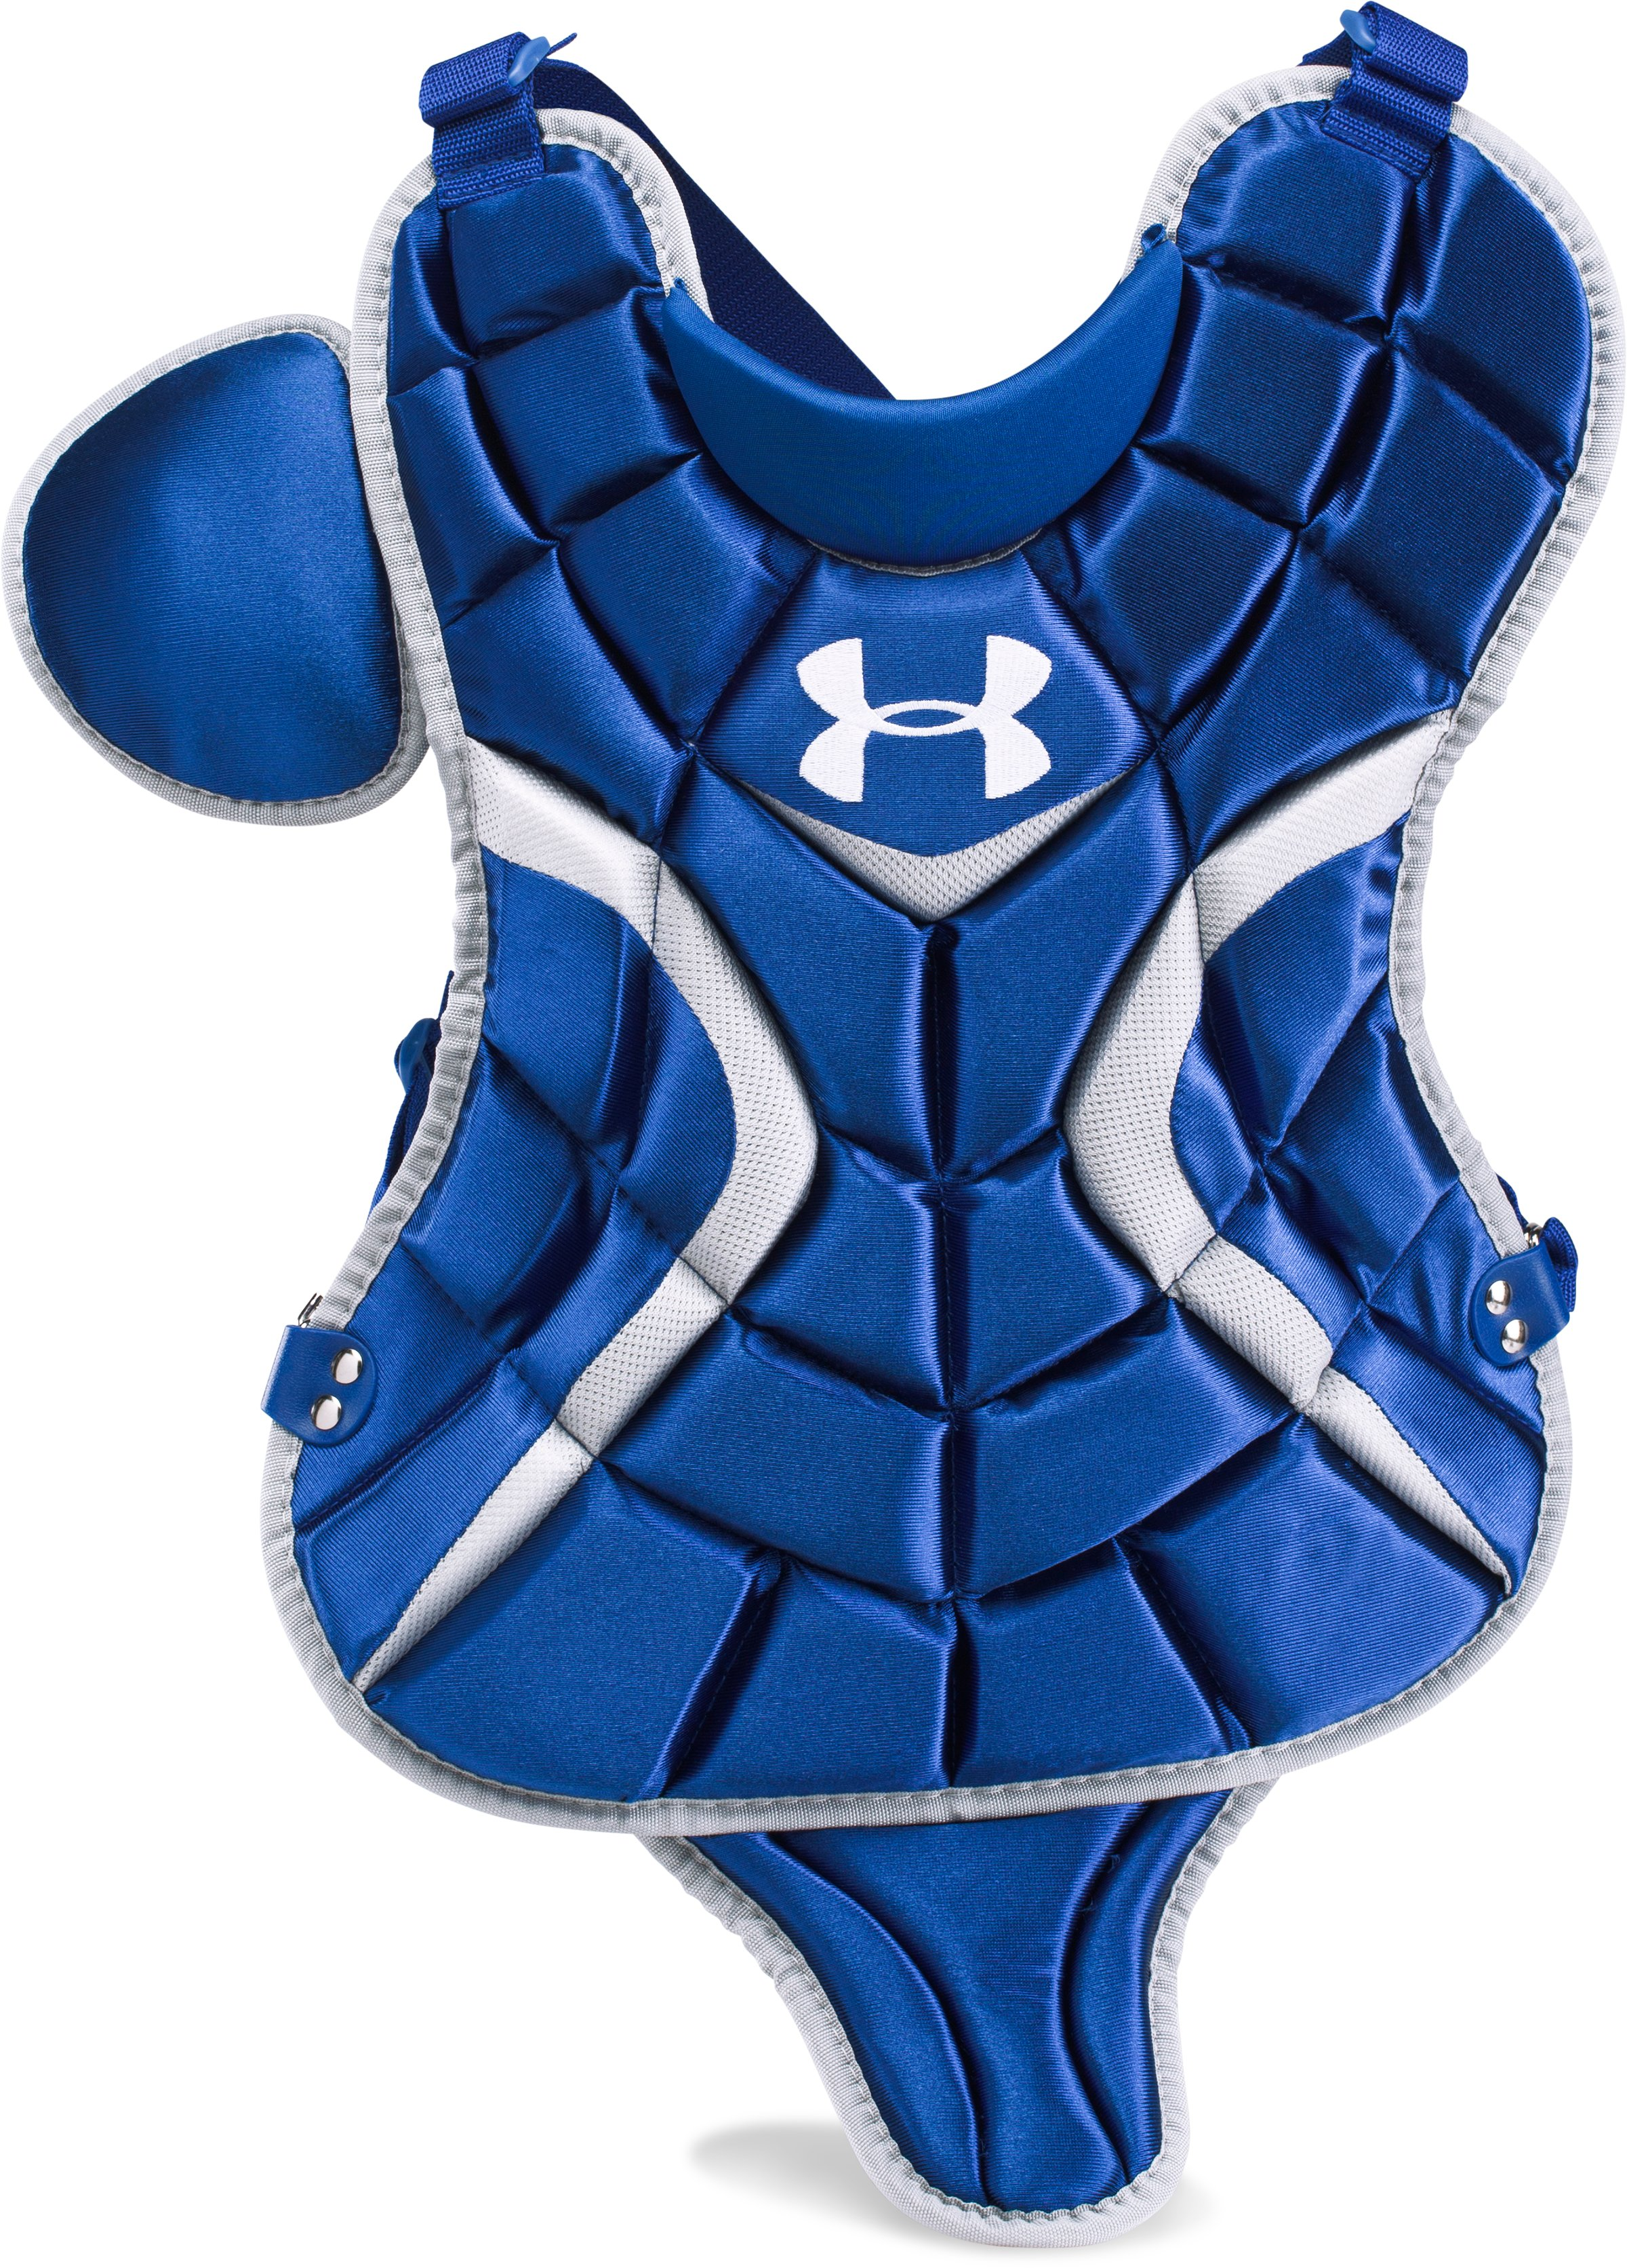 "Boys' UA Victory Youth Chest Protector 13.5"", Royal"